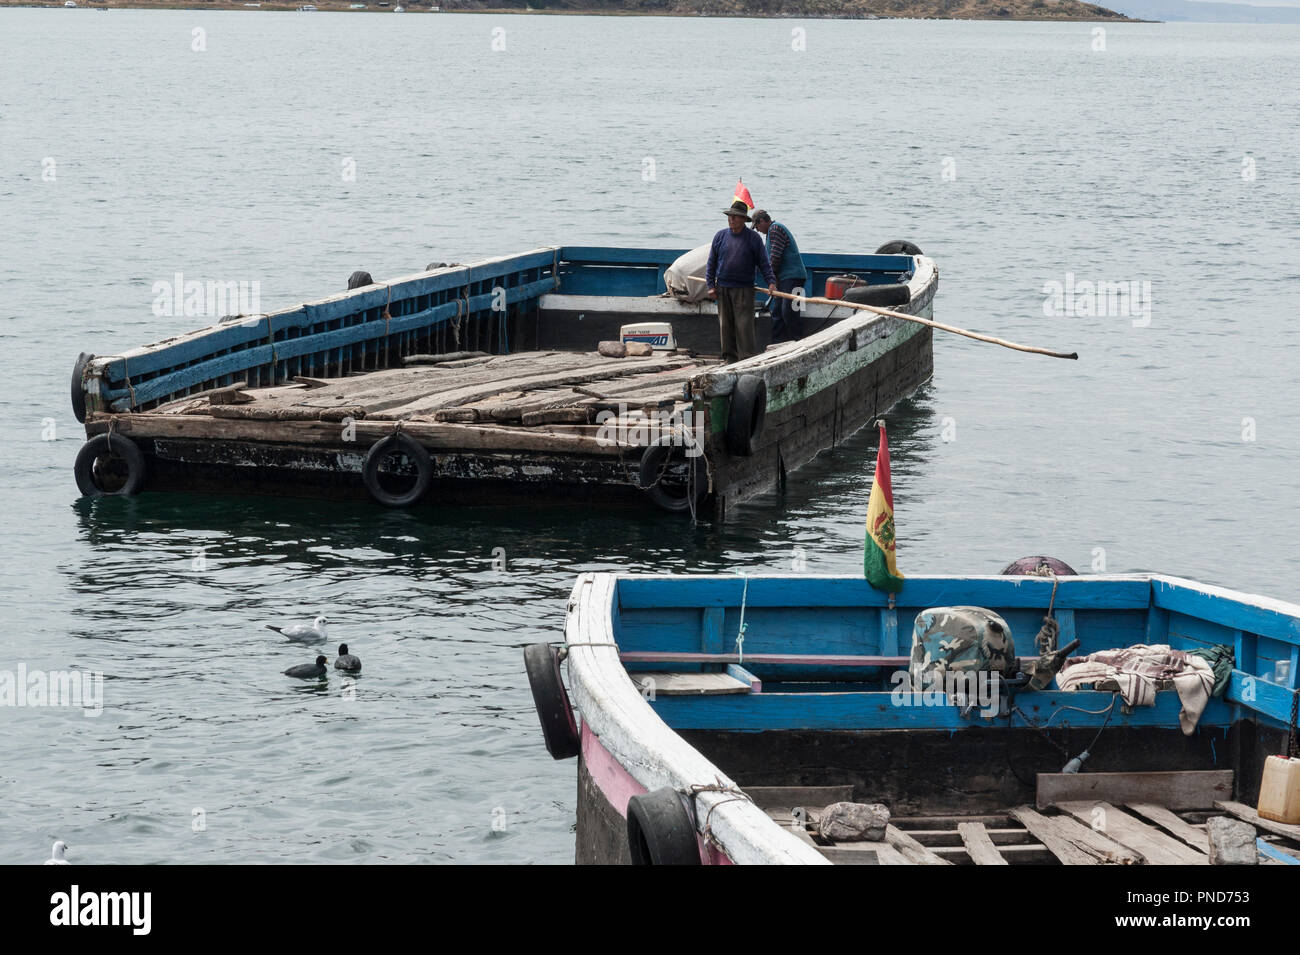 SAN PEDRO DE TIQUINA, BOLIVIA - AUGUST 18, 2017: Unidentified indigenous men on a river ferryboats on the shore of Lake Titicaca at the Strait of Tiqu - Stock Image